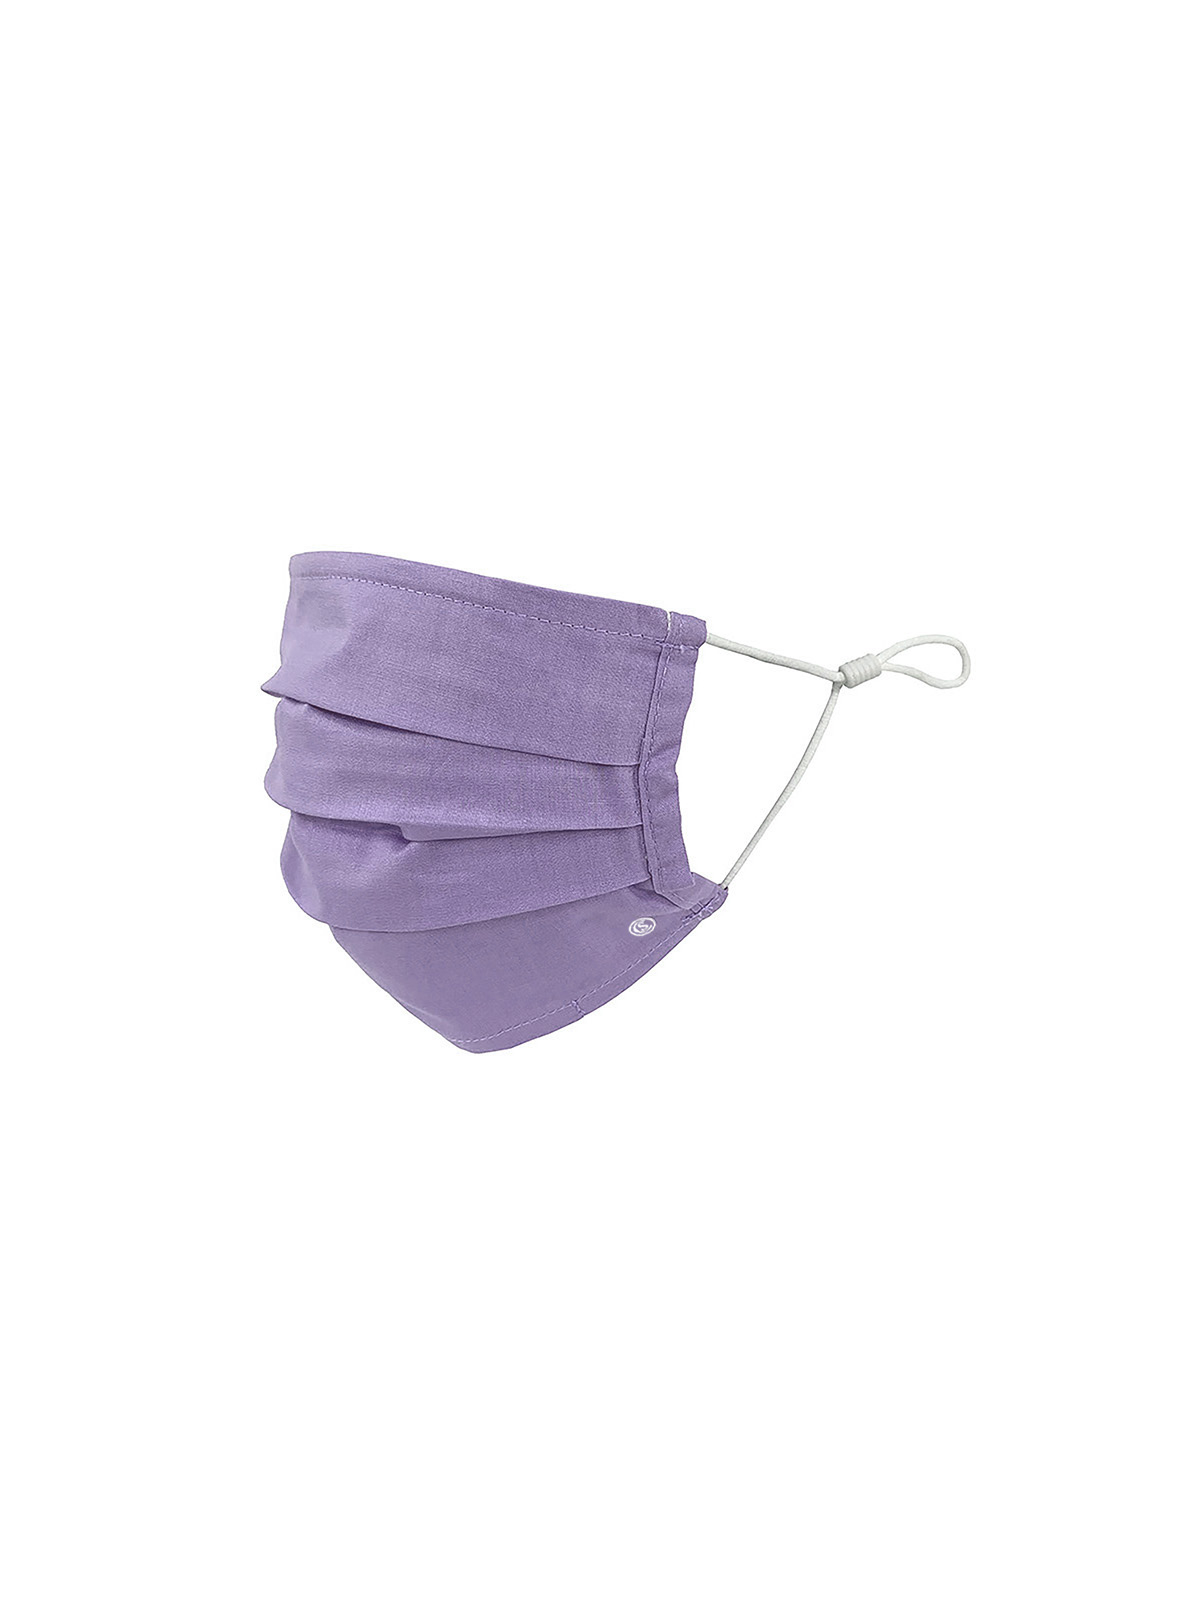 KIDS LIBERY FLORAL PLEATED MASK 6-PACK